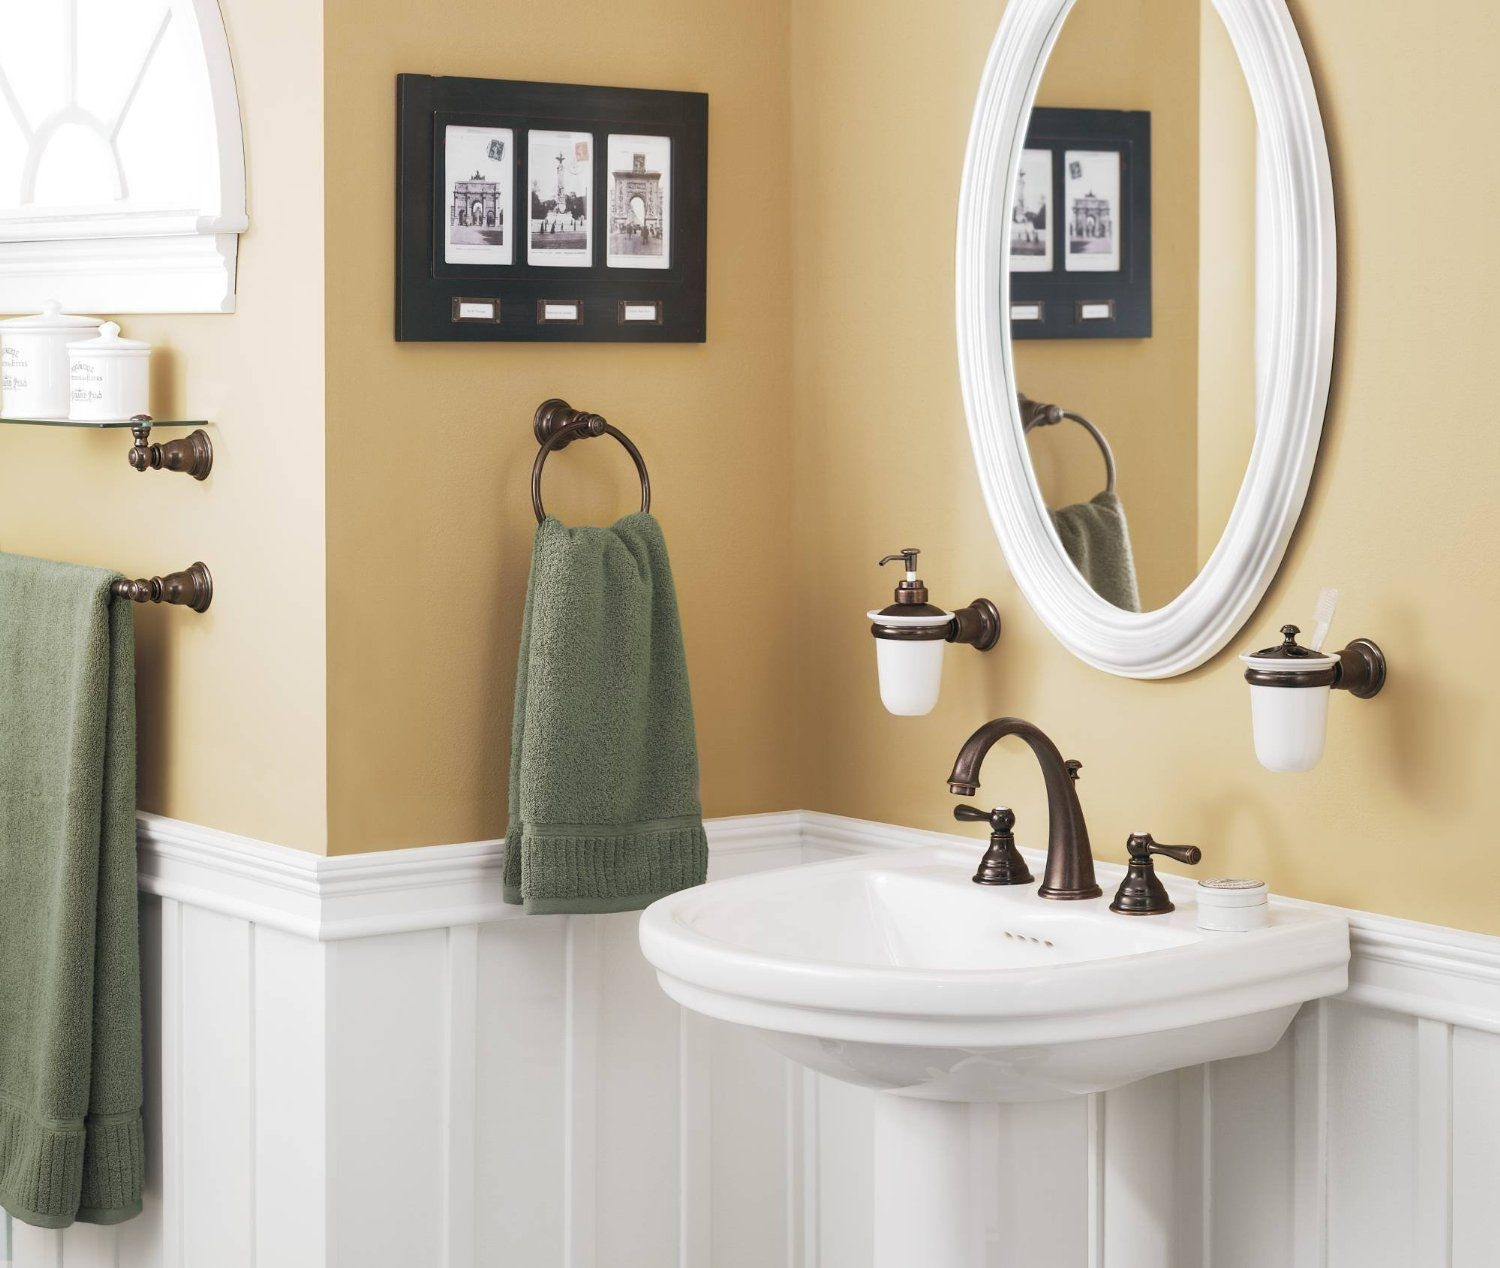 Bon Wall Mounted Bathroom Accessories 19